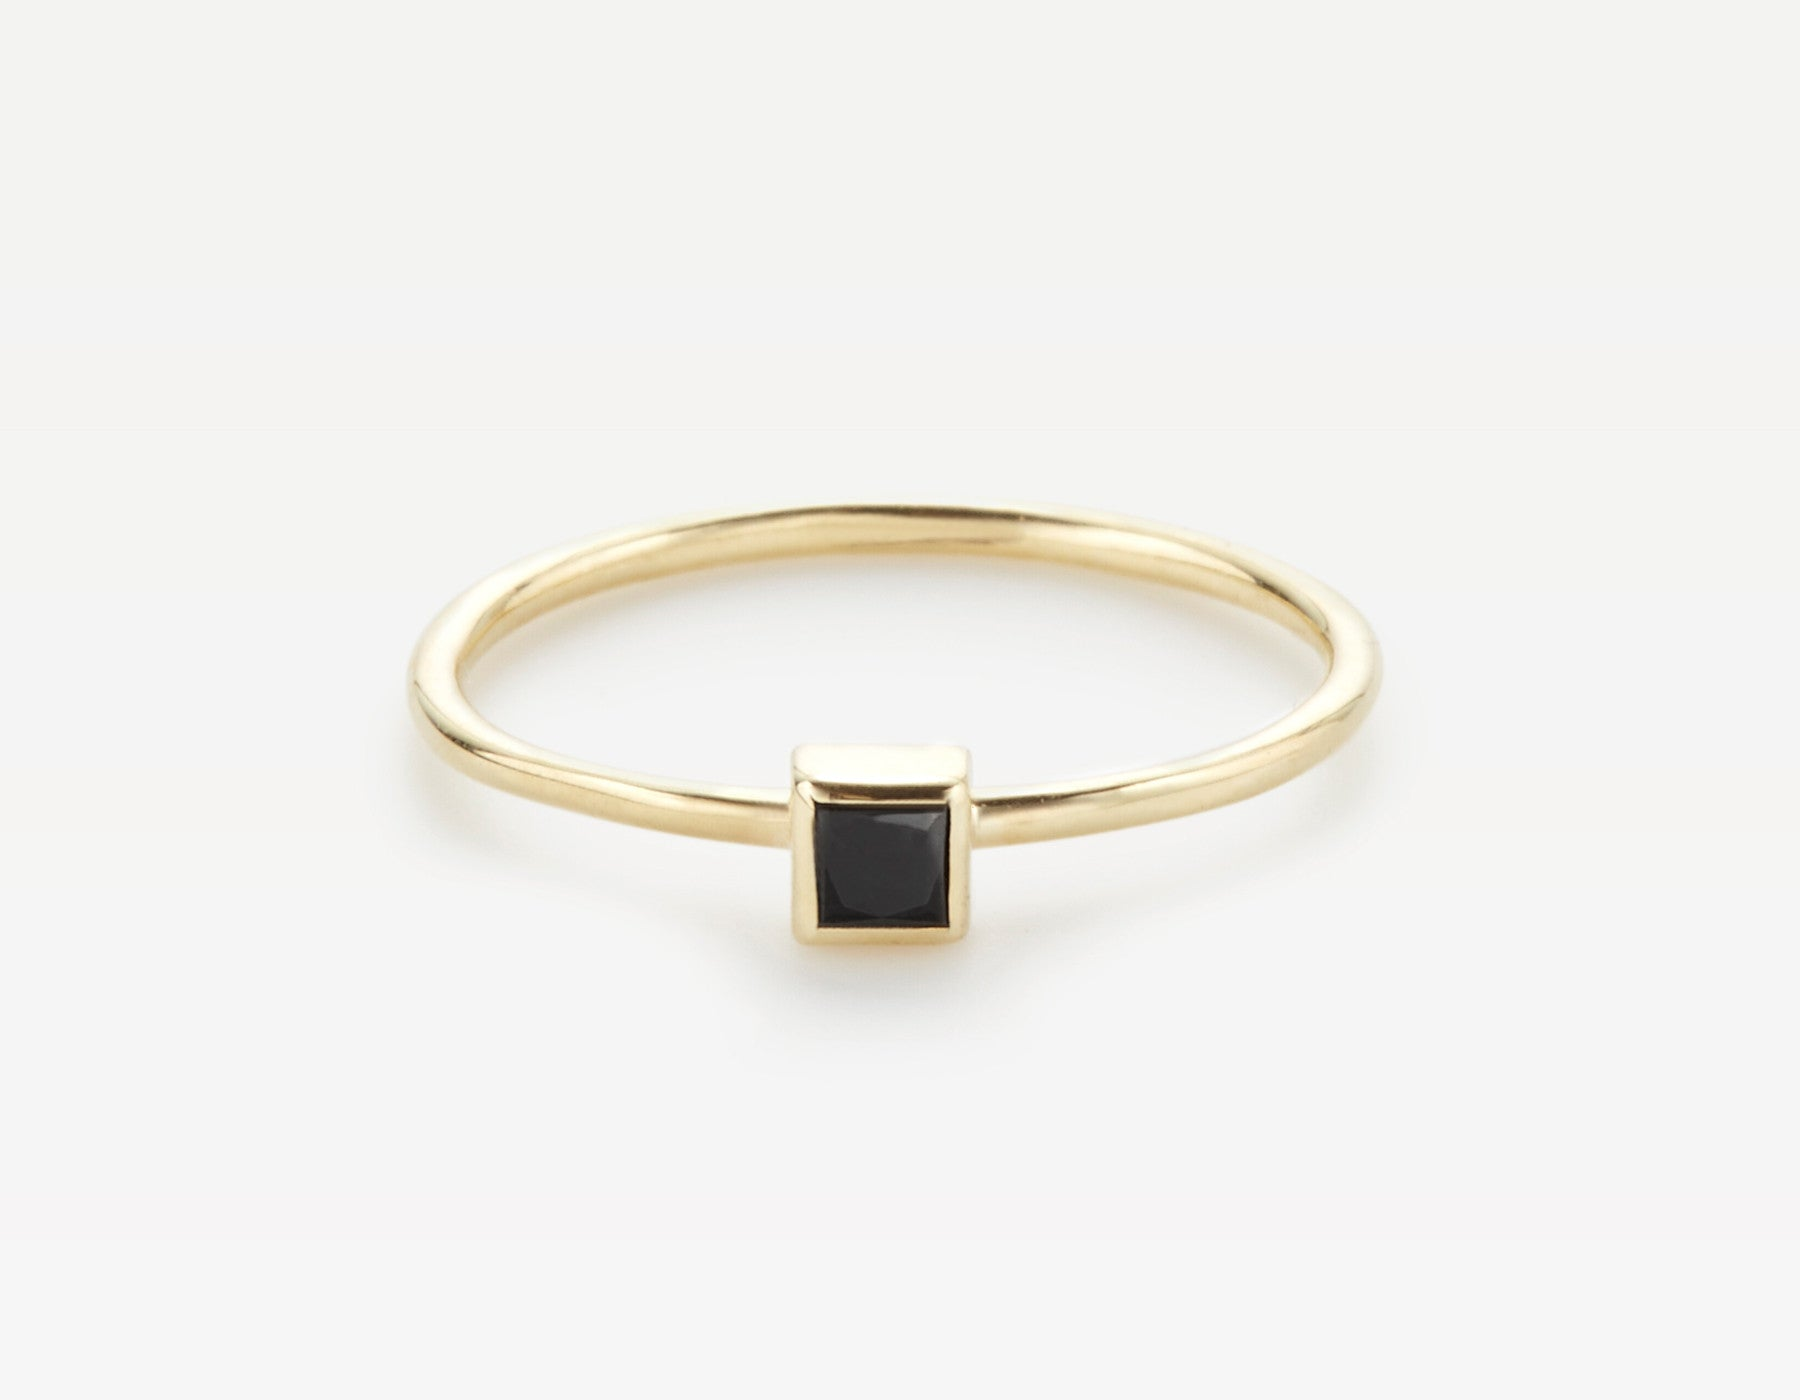 Black Square Diamond Ring 14k Yellow Gold